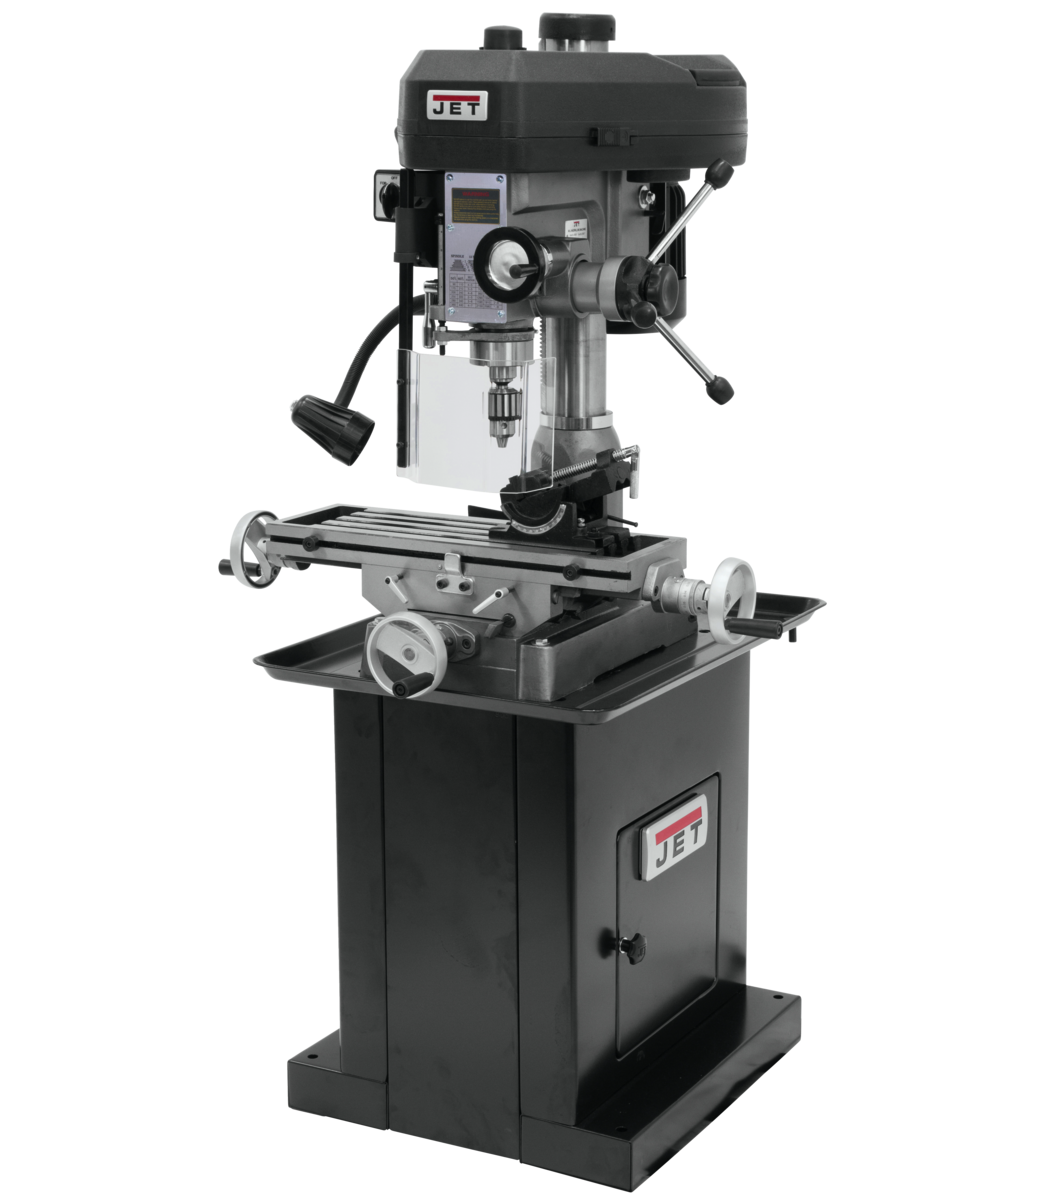 Belt Drive Series Mill/Drill